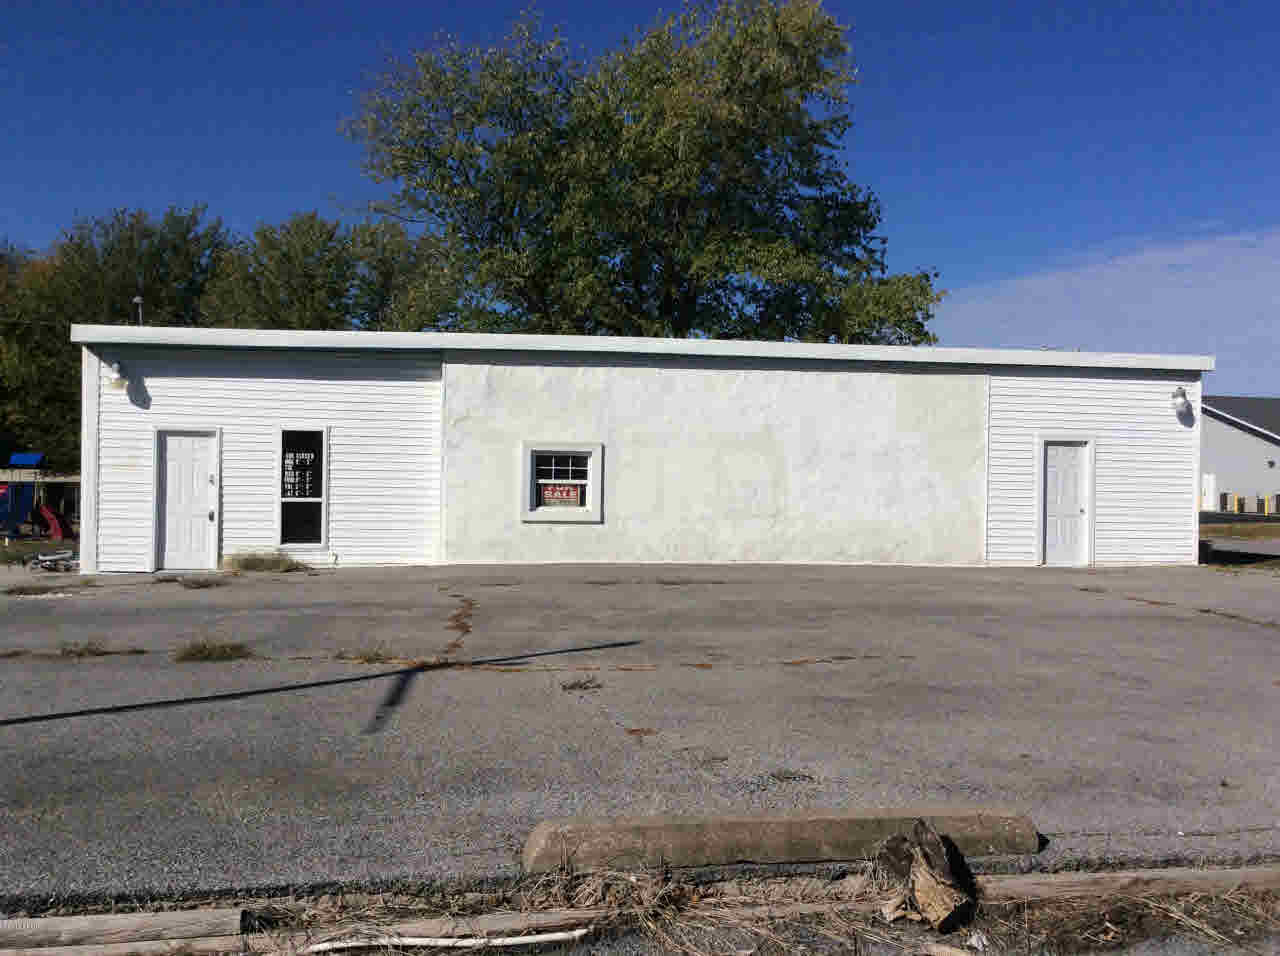 401 N MAIN Property Photo - Ina, IL real estate listing